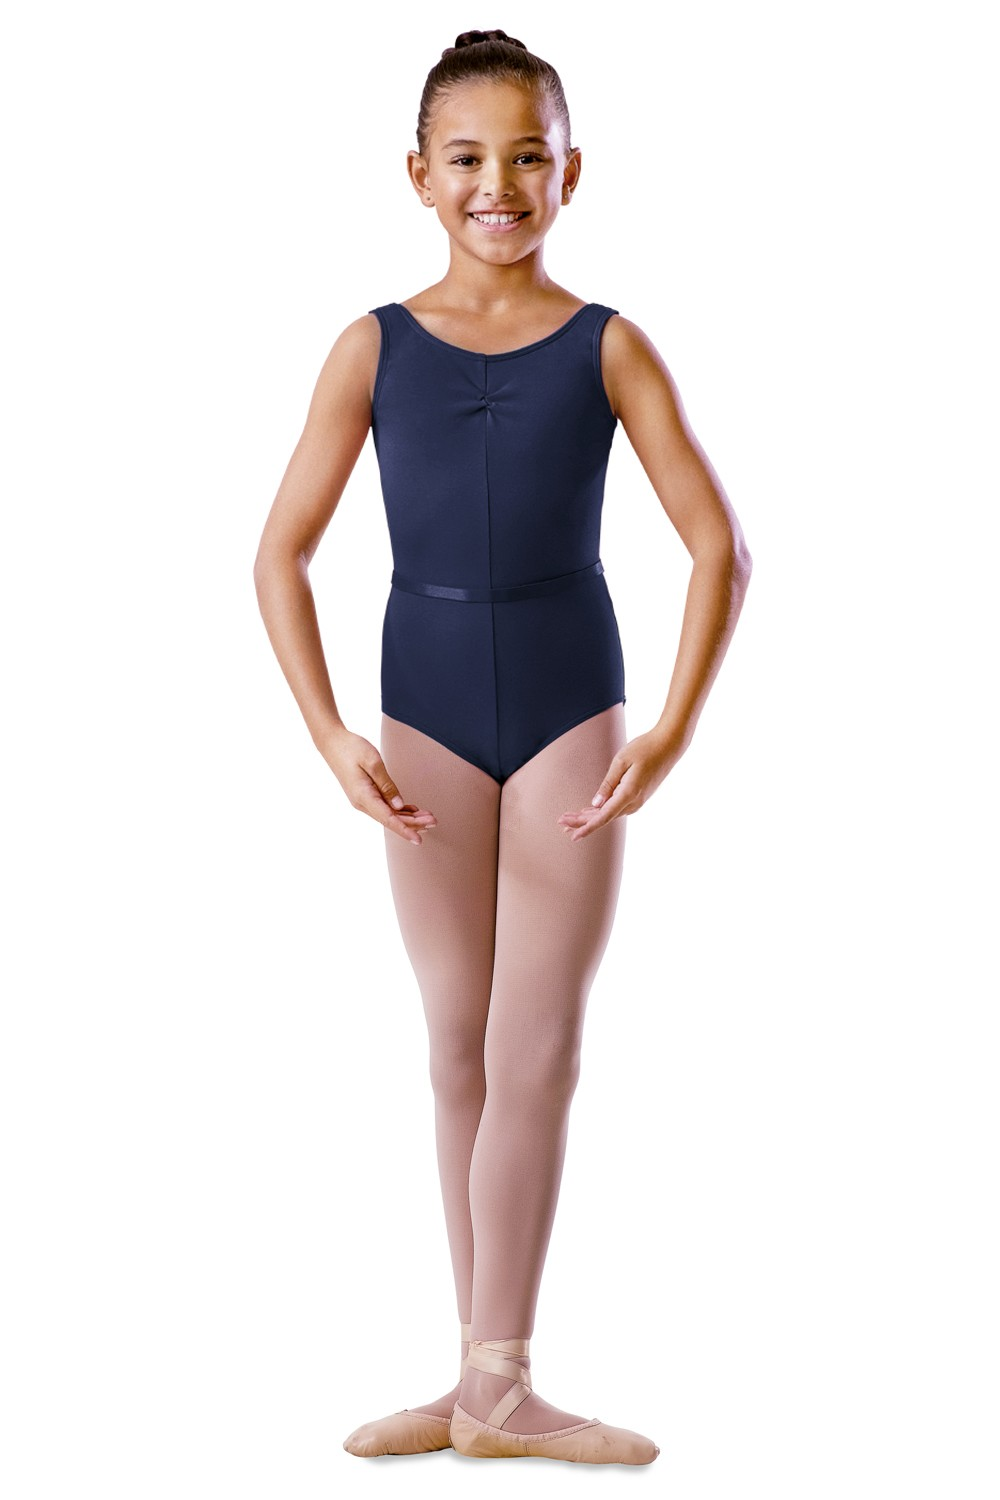 Rouche Front Tank - Girls Children's Dance Uniforms